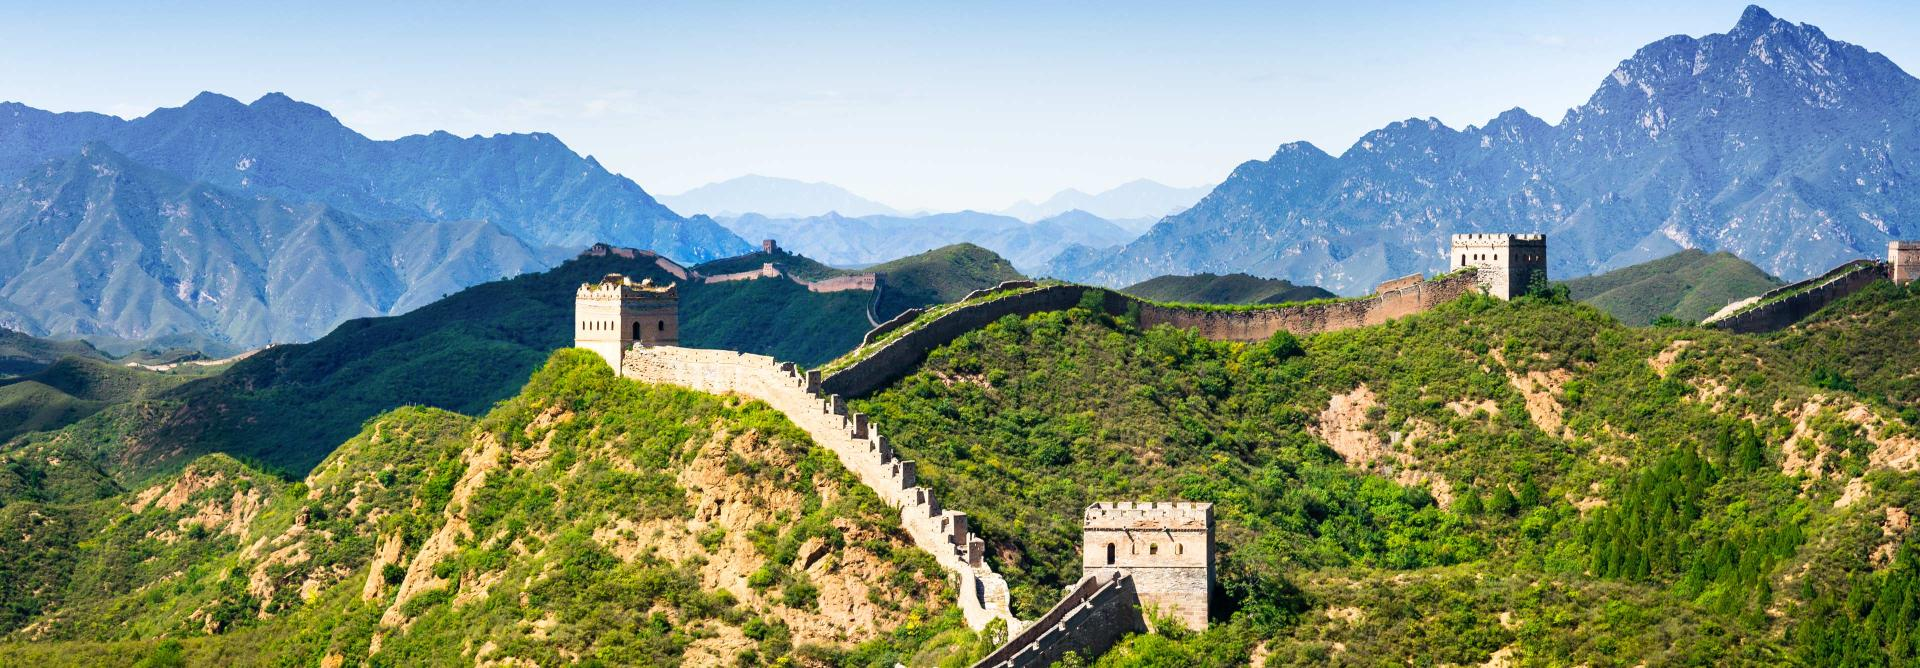 Watchtowers on the Great wall of China Charity Challenge